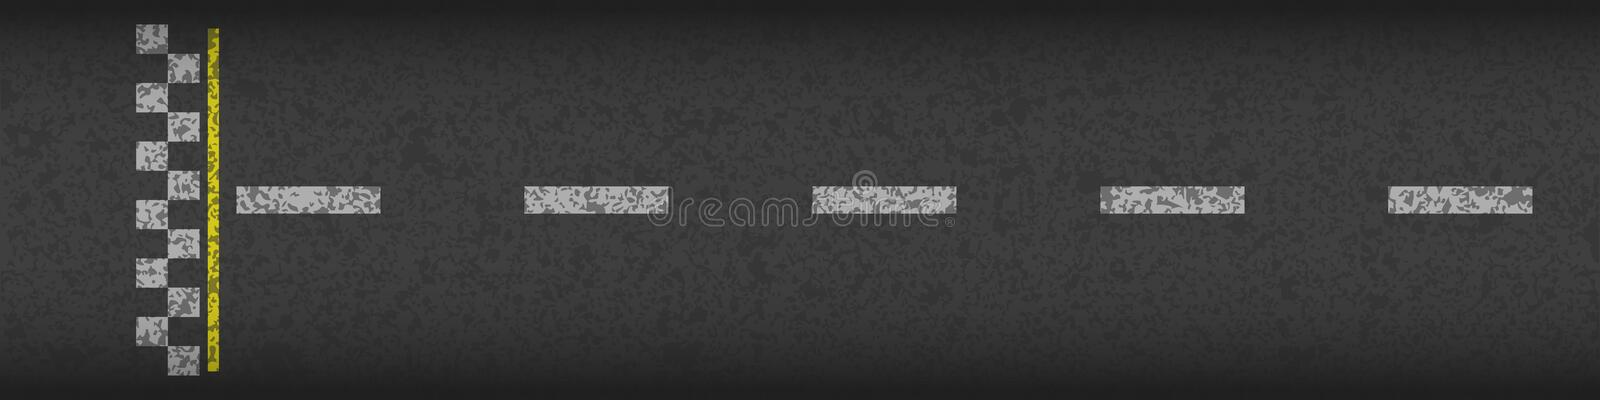 Finish line racing background top view. Art design. Grunge textured on the asphalt road. Abstract concept graphic. Element. Vector illustration stock illustration